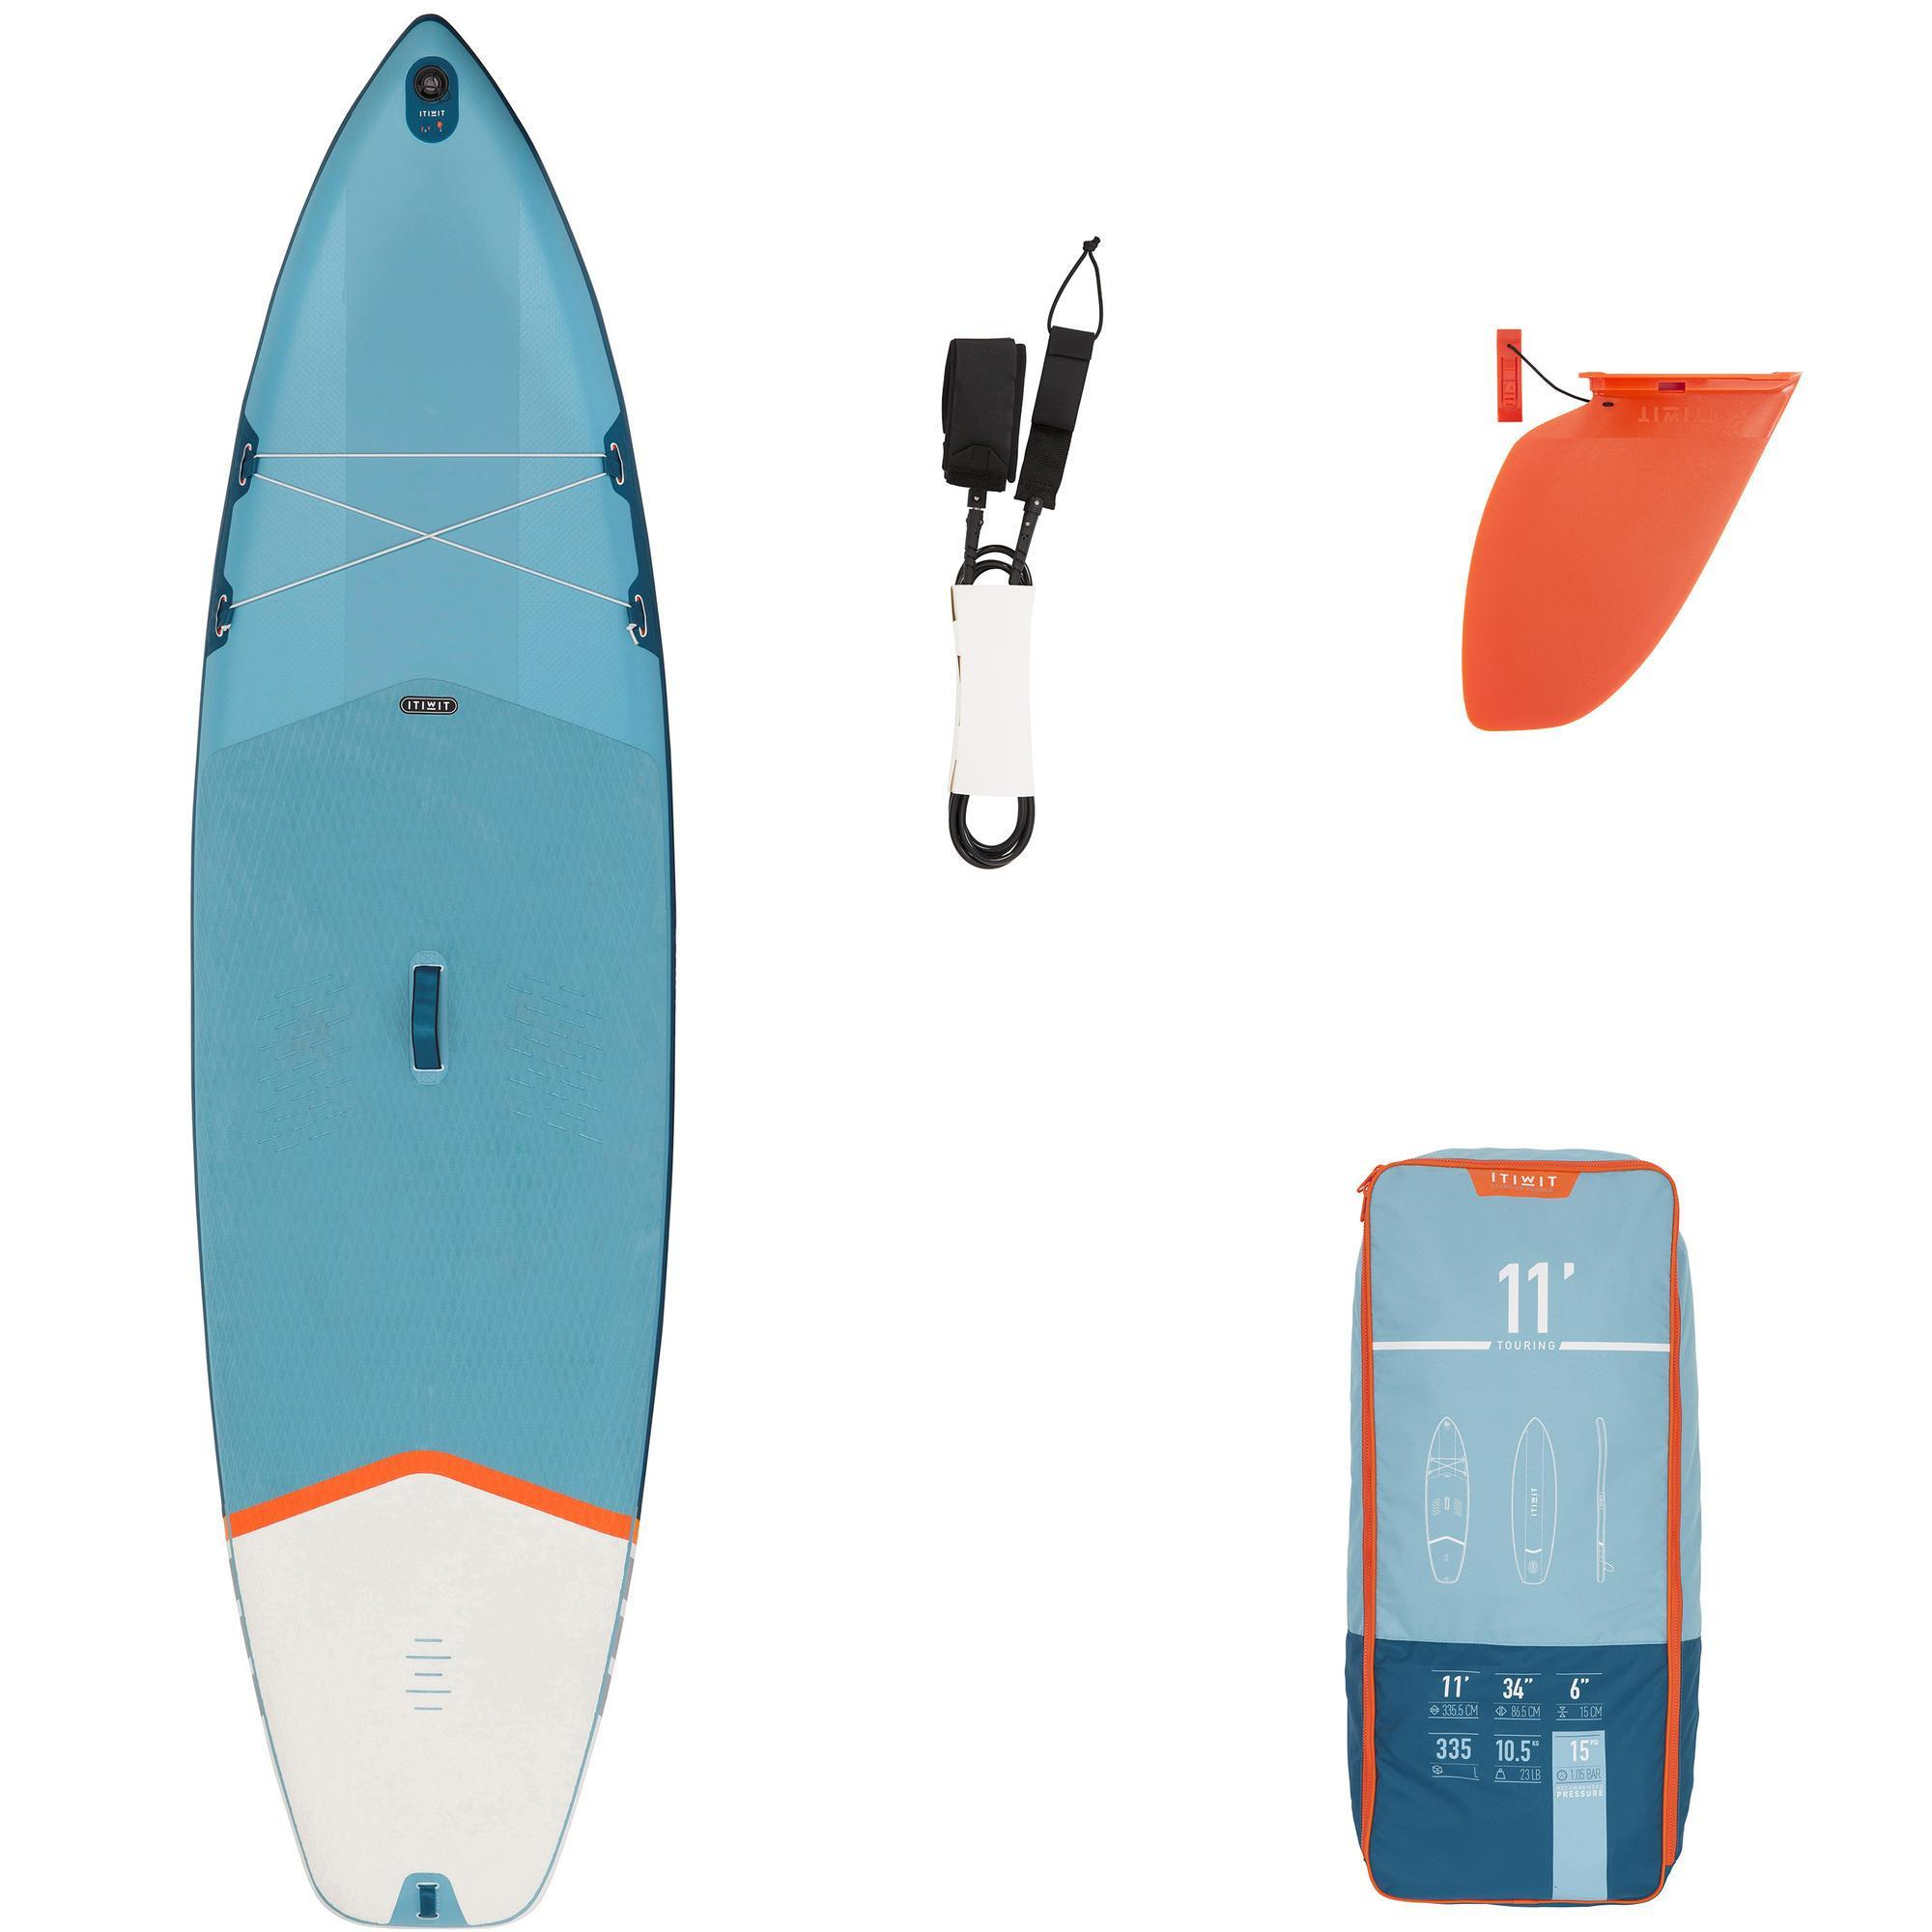 "Decathlon 11'0"" Touring SUP Board - Einsteiger - SUP-Board Stand Up Paddle Board aufblasbar - blau"